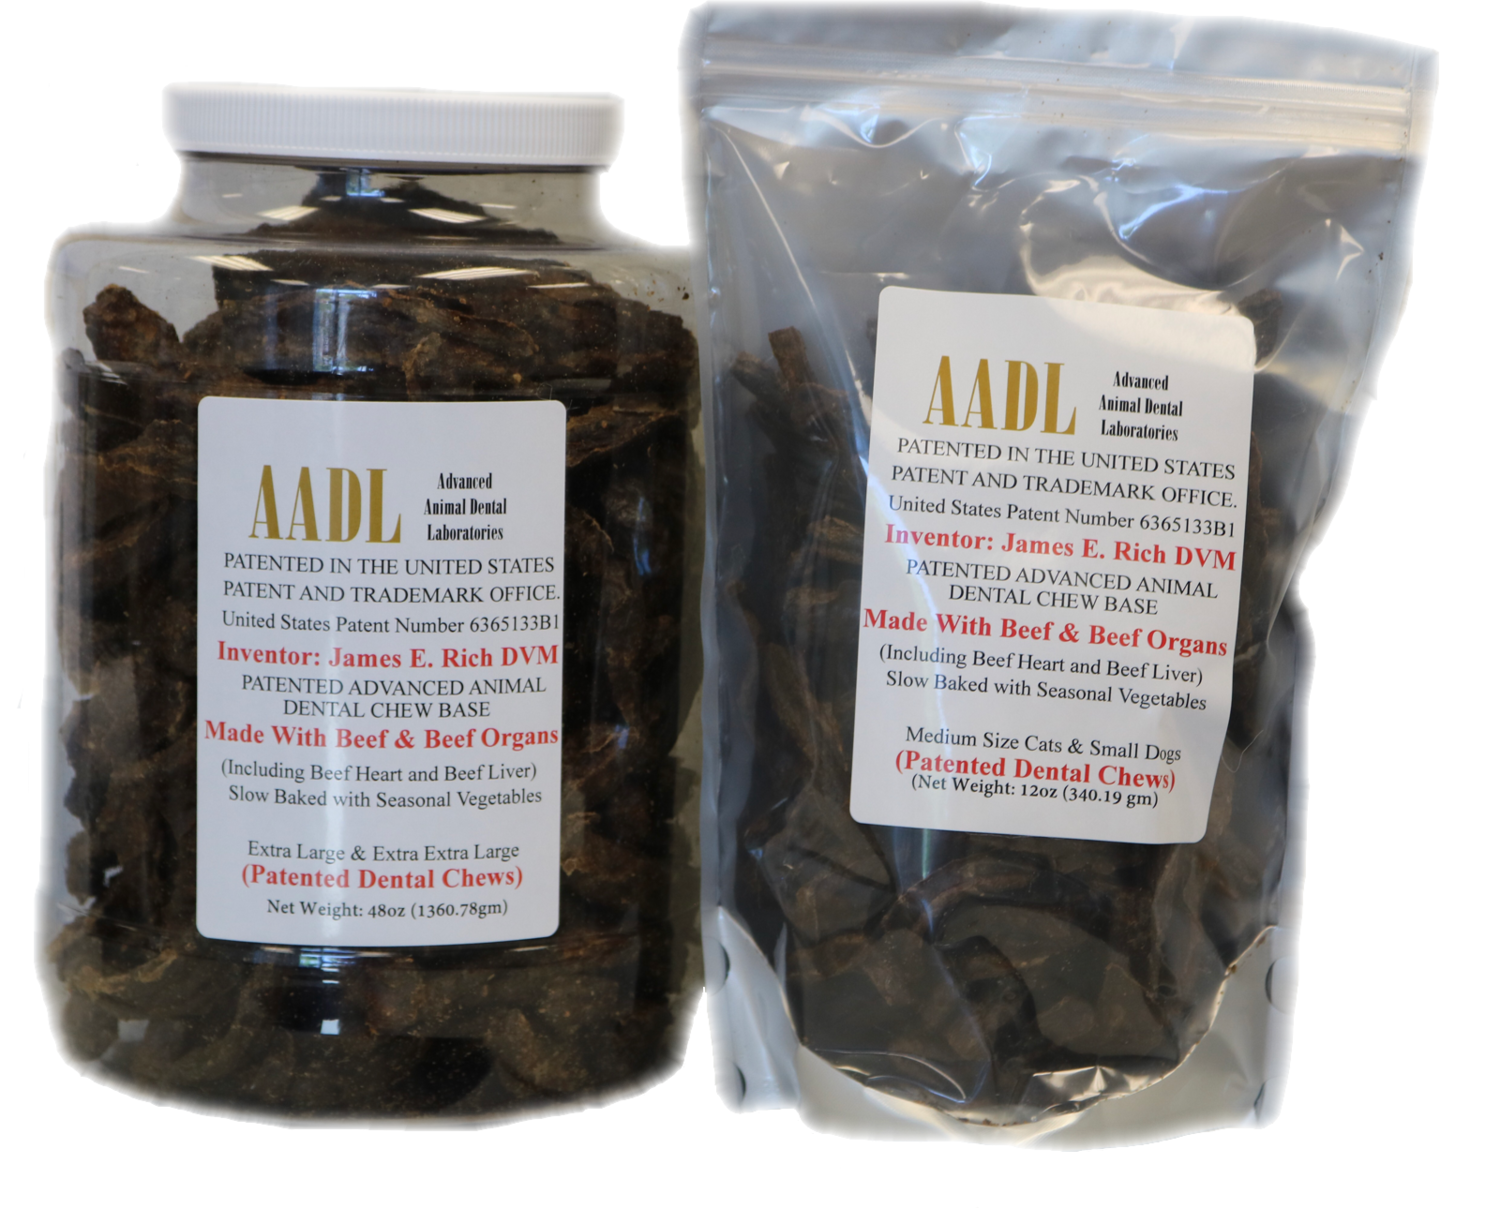 Large & Extra Large Patented Beefy Dental Chews for Dogs